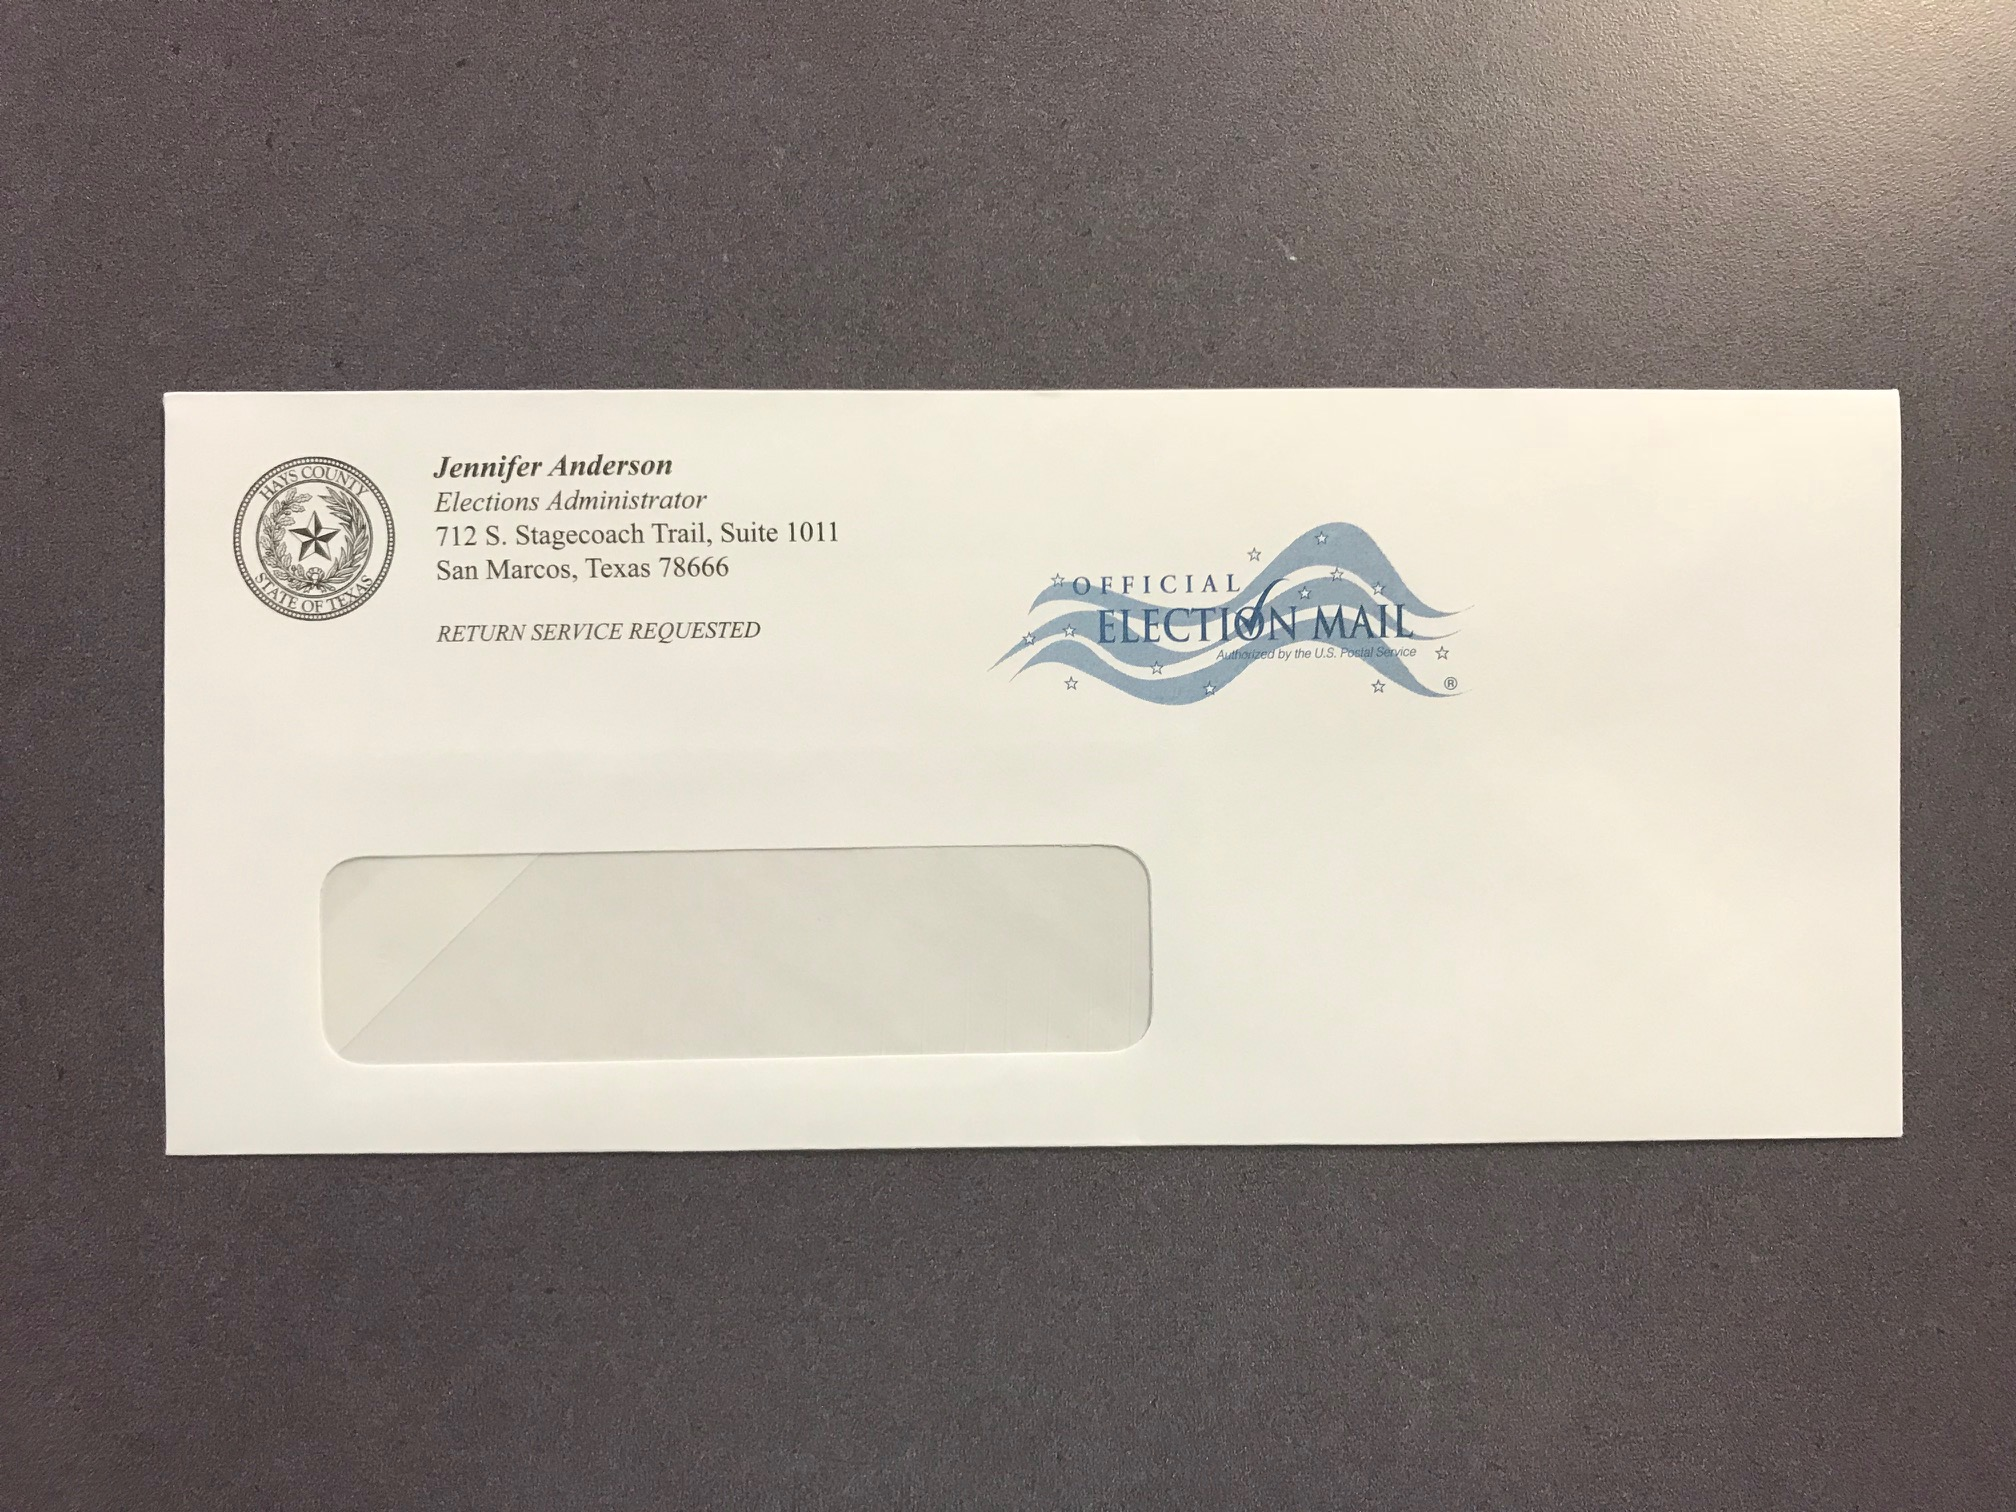 08-09 Official Election Window Envelope